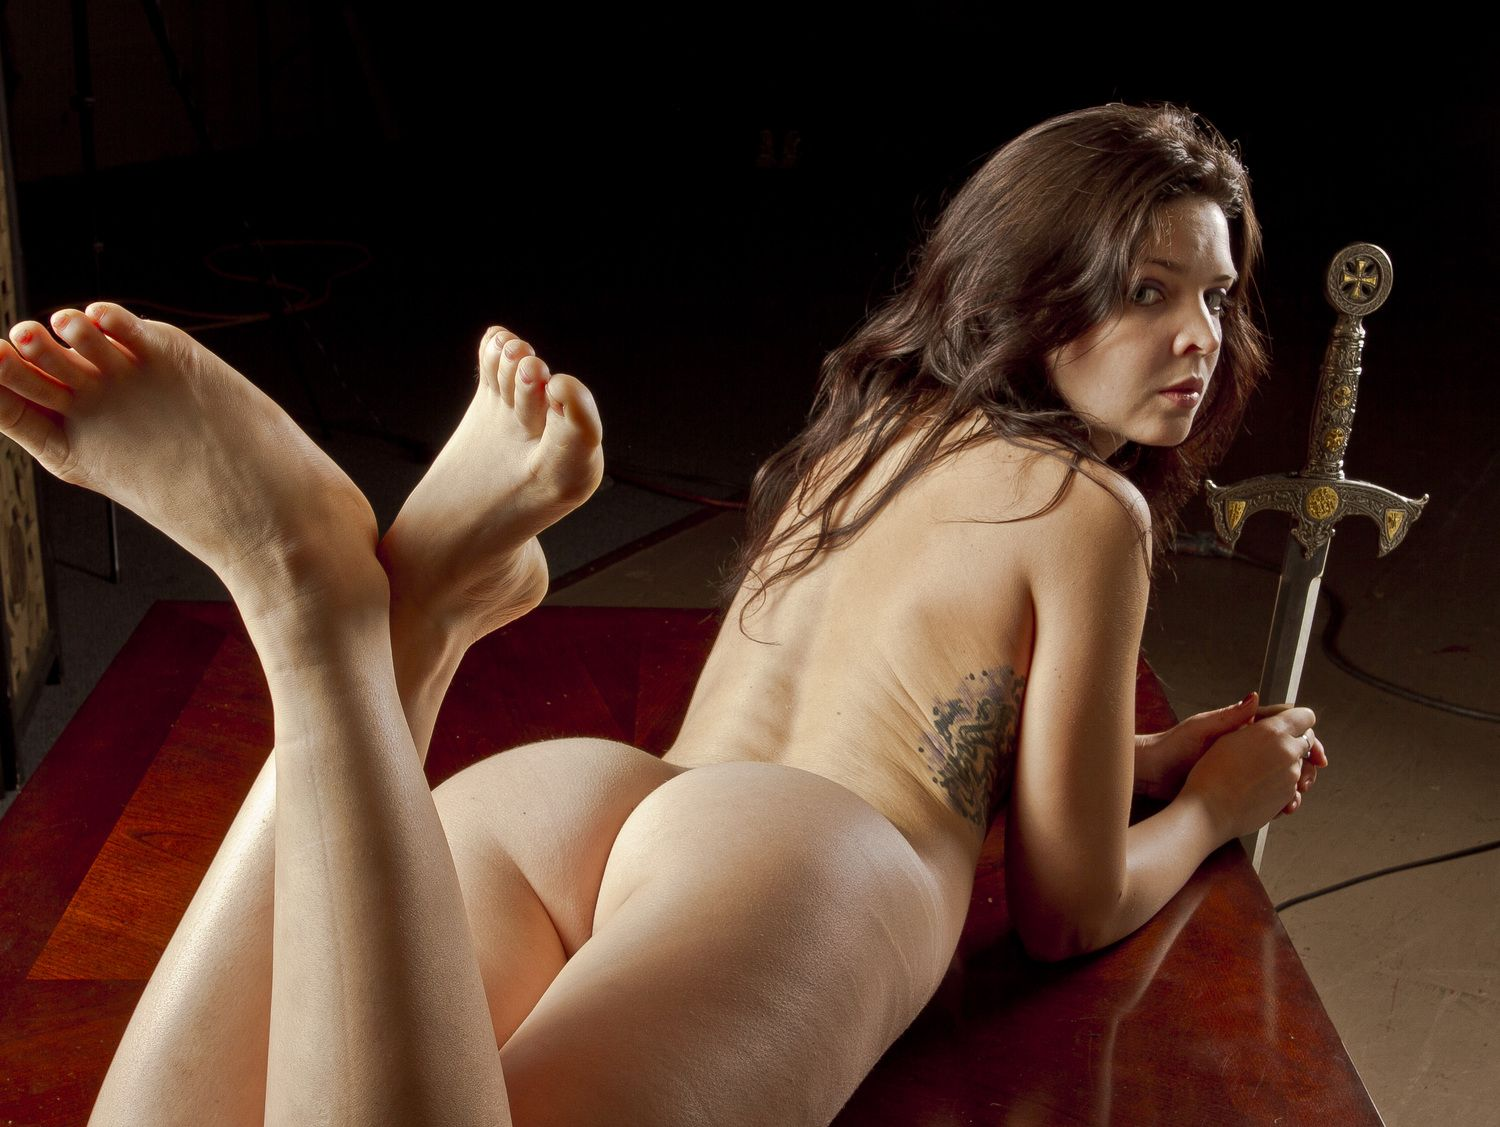 Chinese sex in nude